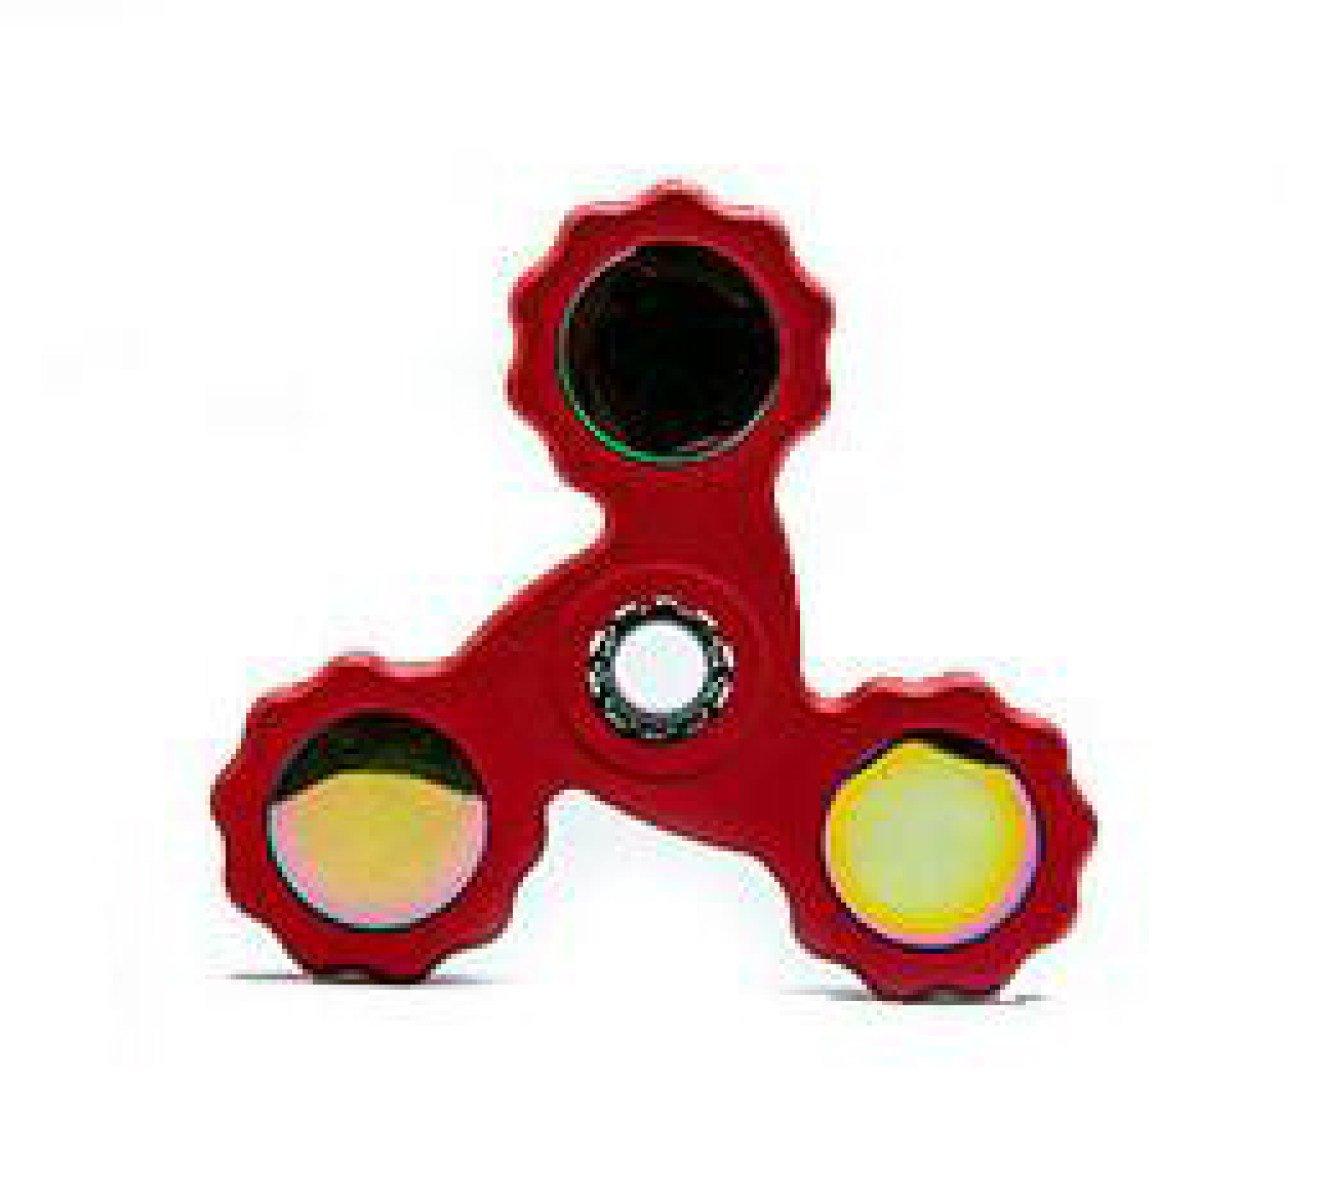 YIHANG @ Fidget Spinner Dreieck Fingerspitzen Gyroskop Finger Spirale High Speed ​​Focus Super Durable Dekompression Spielzeug